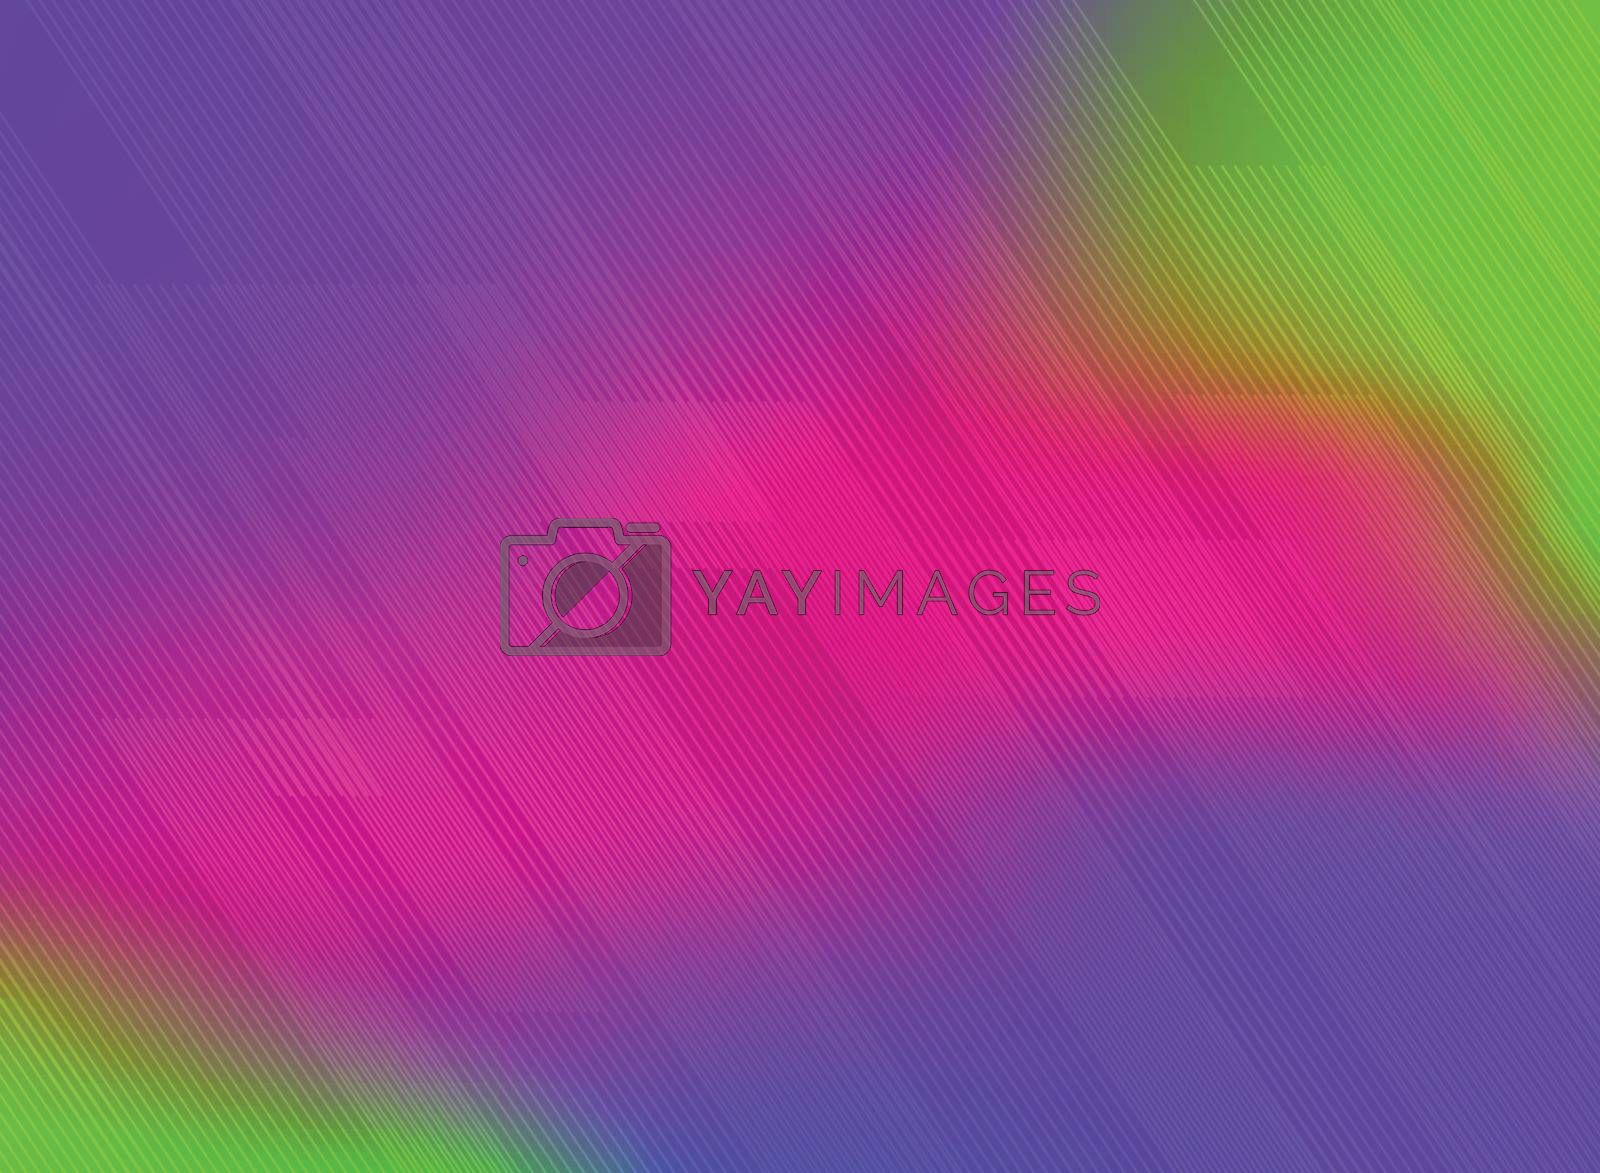 Abstract lines pattern technology on vivid color gradients background. Vector illustration